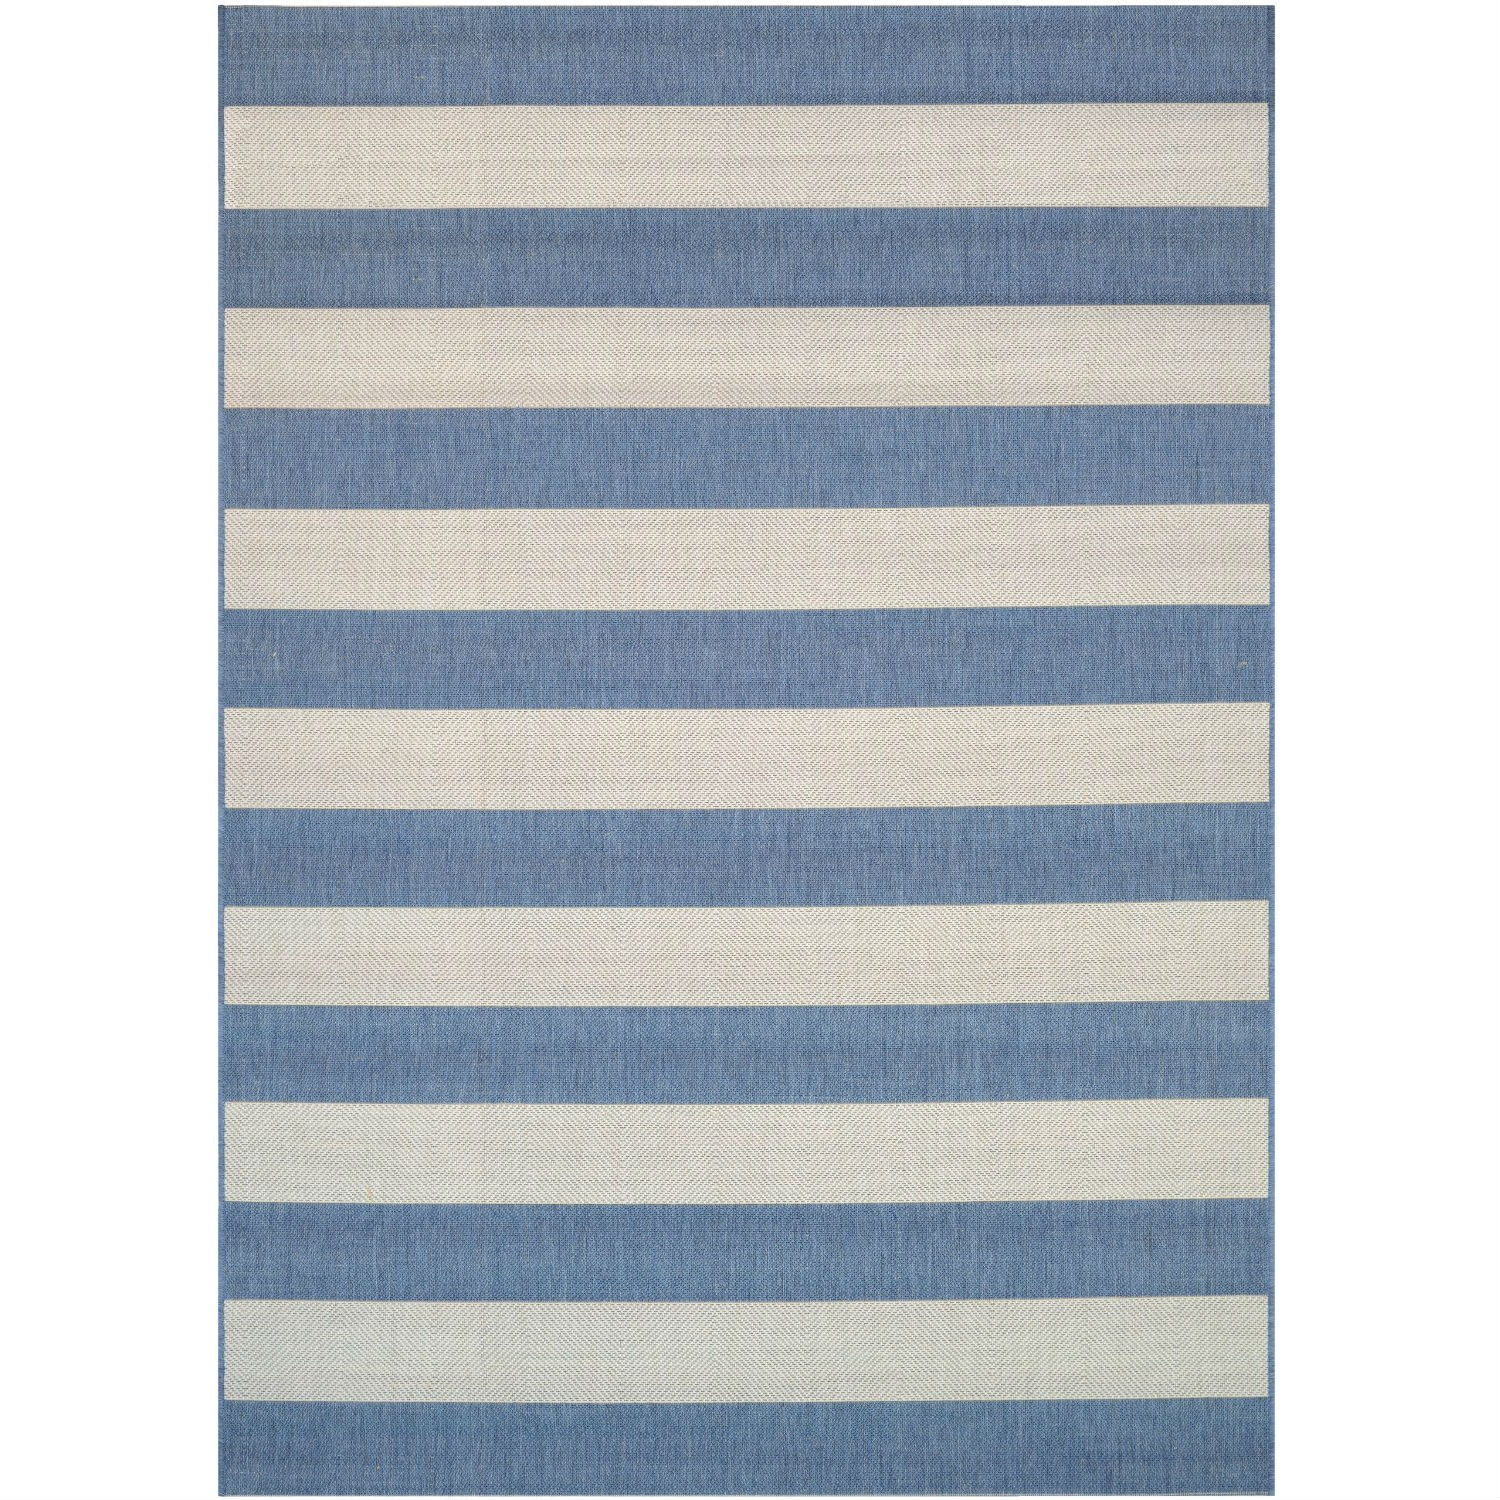 2' x 3'7 Ivory Blue Stripe Outdoor Indoor Rug, CAYC1389123 :  Your search for the perfect outdoor/indoor area rug is over. Introducing 2' x 3'7 Ivory Blue Stripe Outdoor Indoor Rug, the ideal solution to any outdoor space. Power-loomed of 100% fiber-enhanced polypropylene, each of the dynamic patterns offer a highly durable pile of superior comfort. The collection's structured, flatwoven construction allows for complete versatility style-wise, as well as an easy-to-maintain surface that's perfect for today's on-the-go household. This casual-chic collection provides an infinite range of style options wherever it is showcased, from casual to transitional indoor living areas and outdoor spaces in need of some spicing up. Whether you're looking for the perfect nautical-inspired addition to your home, or are going for a welcoming country cottage vibe, you are sure to find what you're looking for in this collection. UV Stabilized; Mold/Mildew Resistant; Designed to withstand outdoor elements.